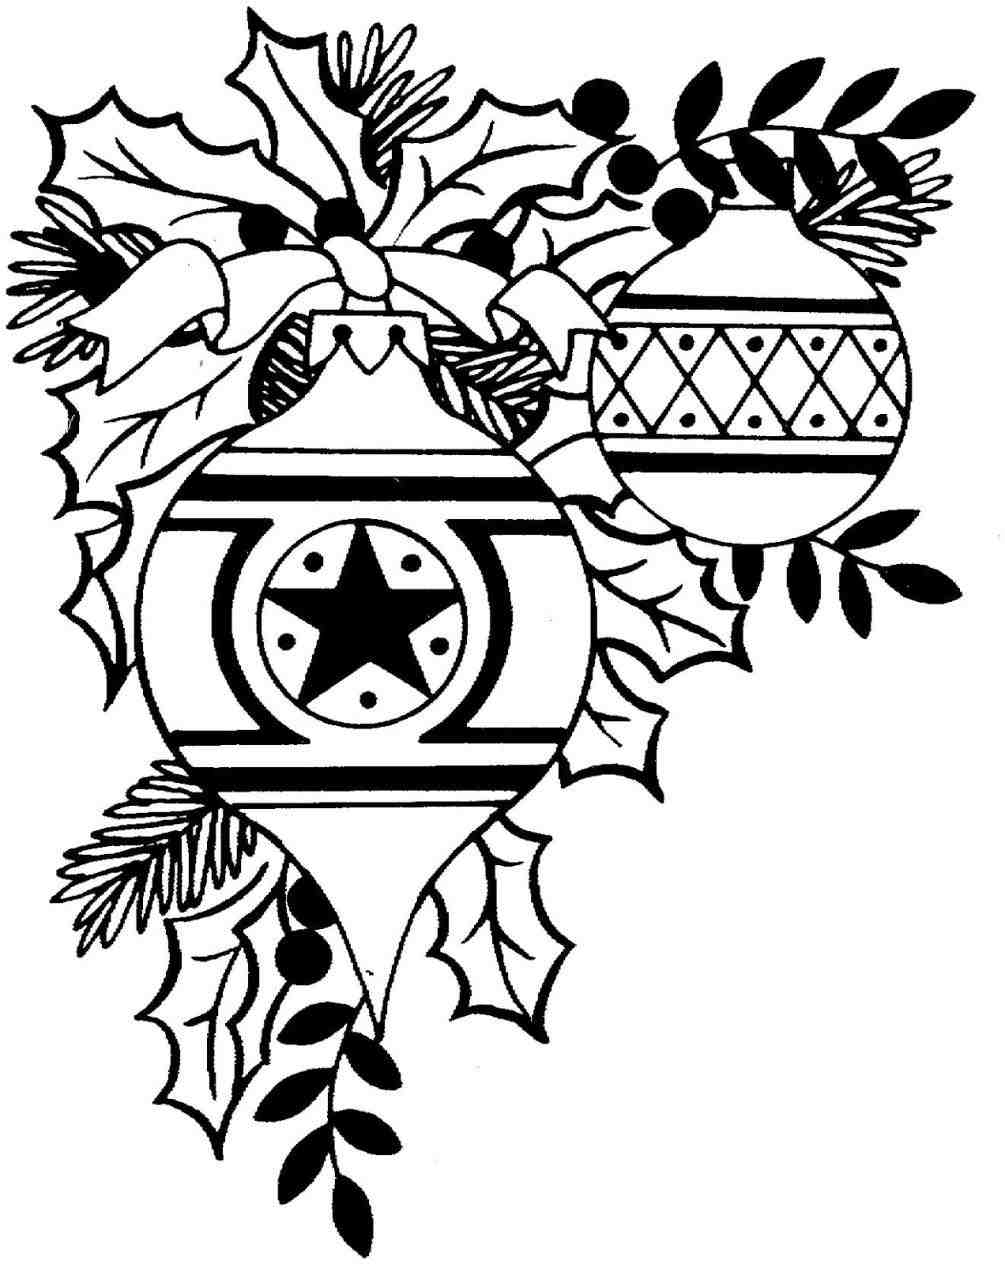 1005x1264 Merry Christmas Black And White Clipart Cheminee.website